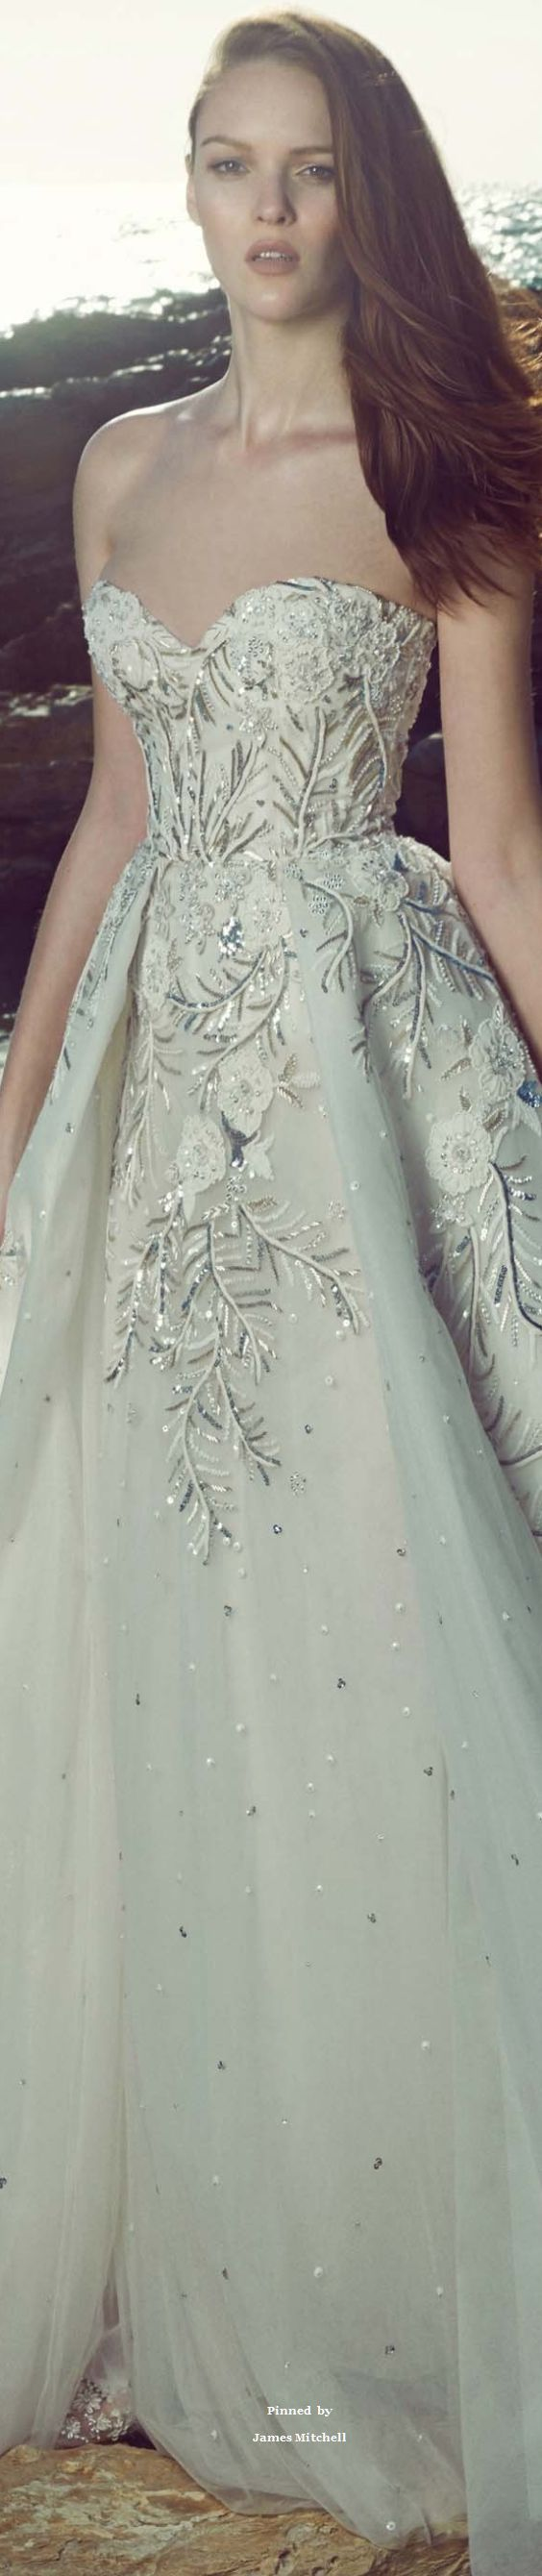 Zuhair Murad Collection Bridal Spring 2017